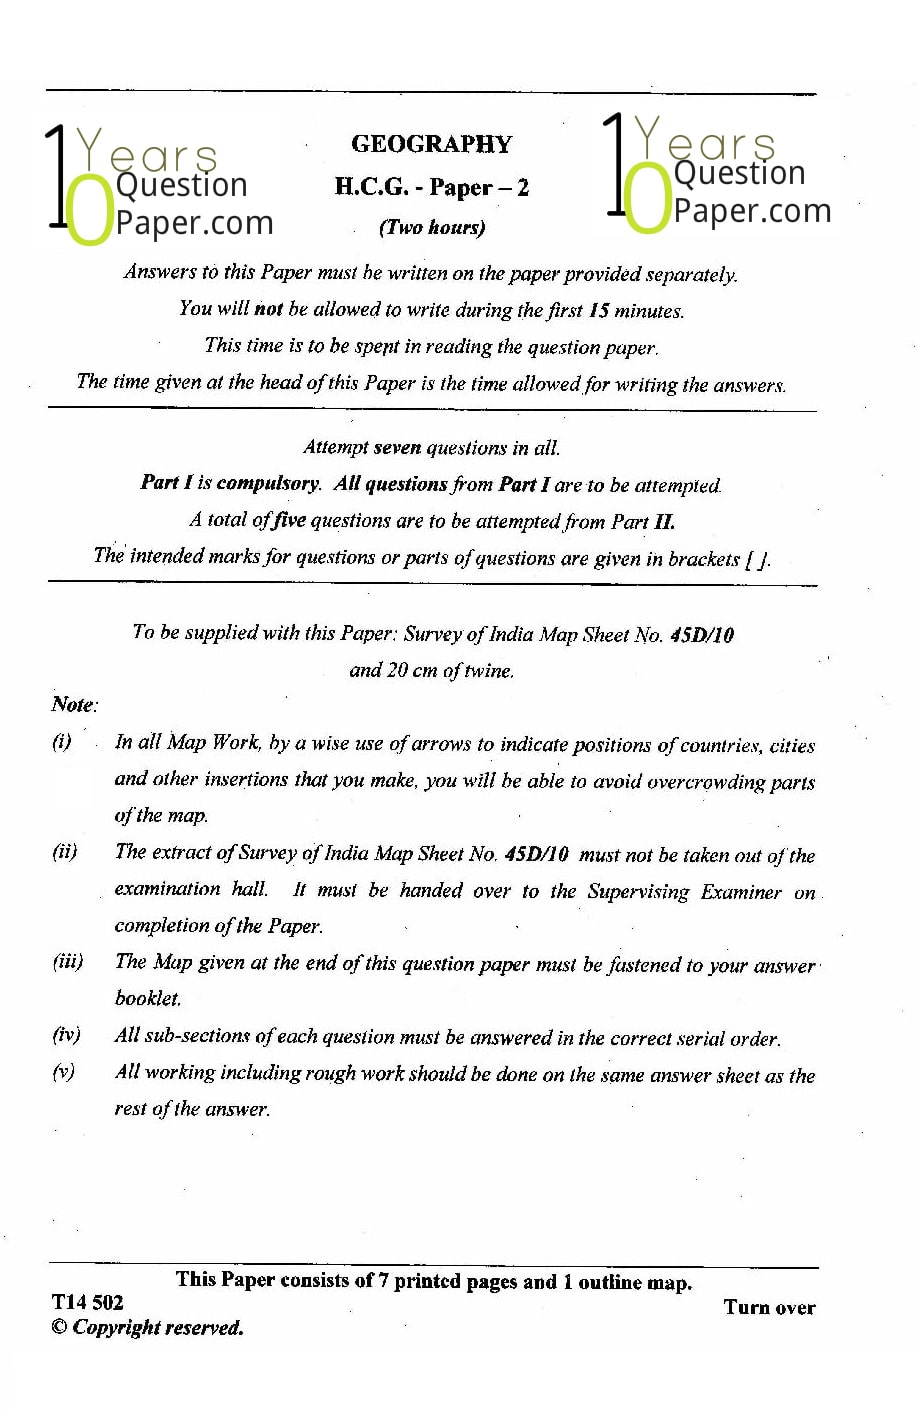 ICSE Class 10 Geography 2014 Question Paper